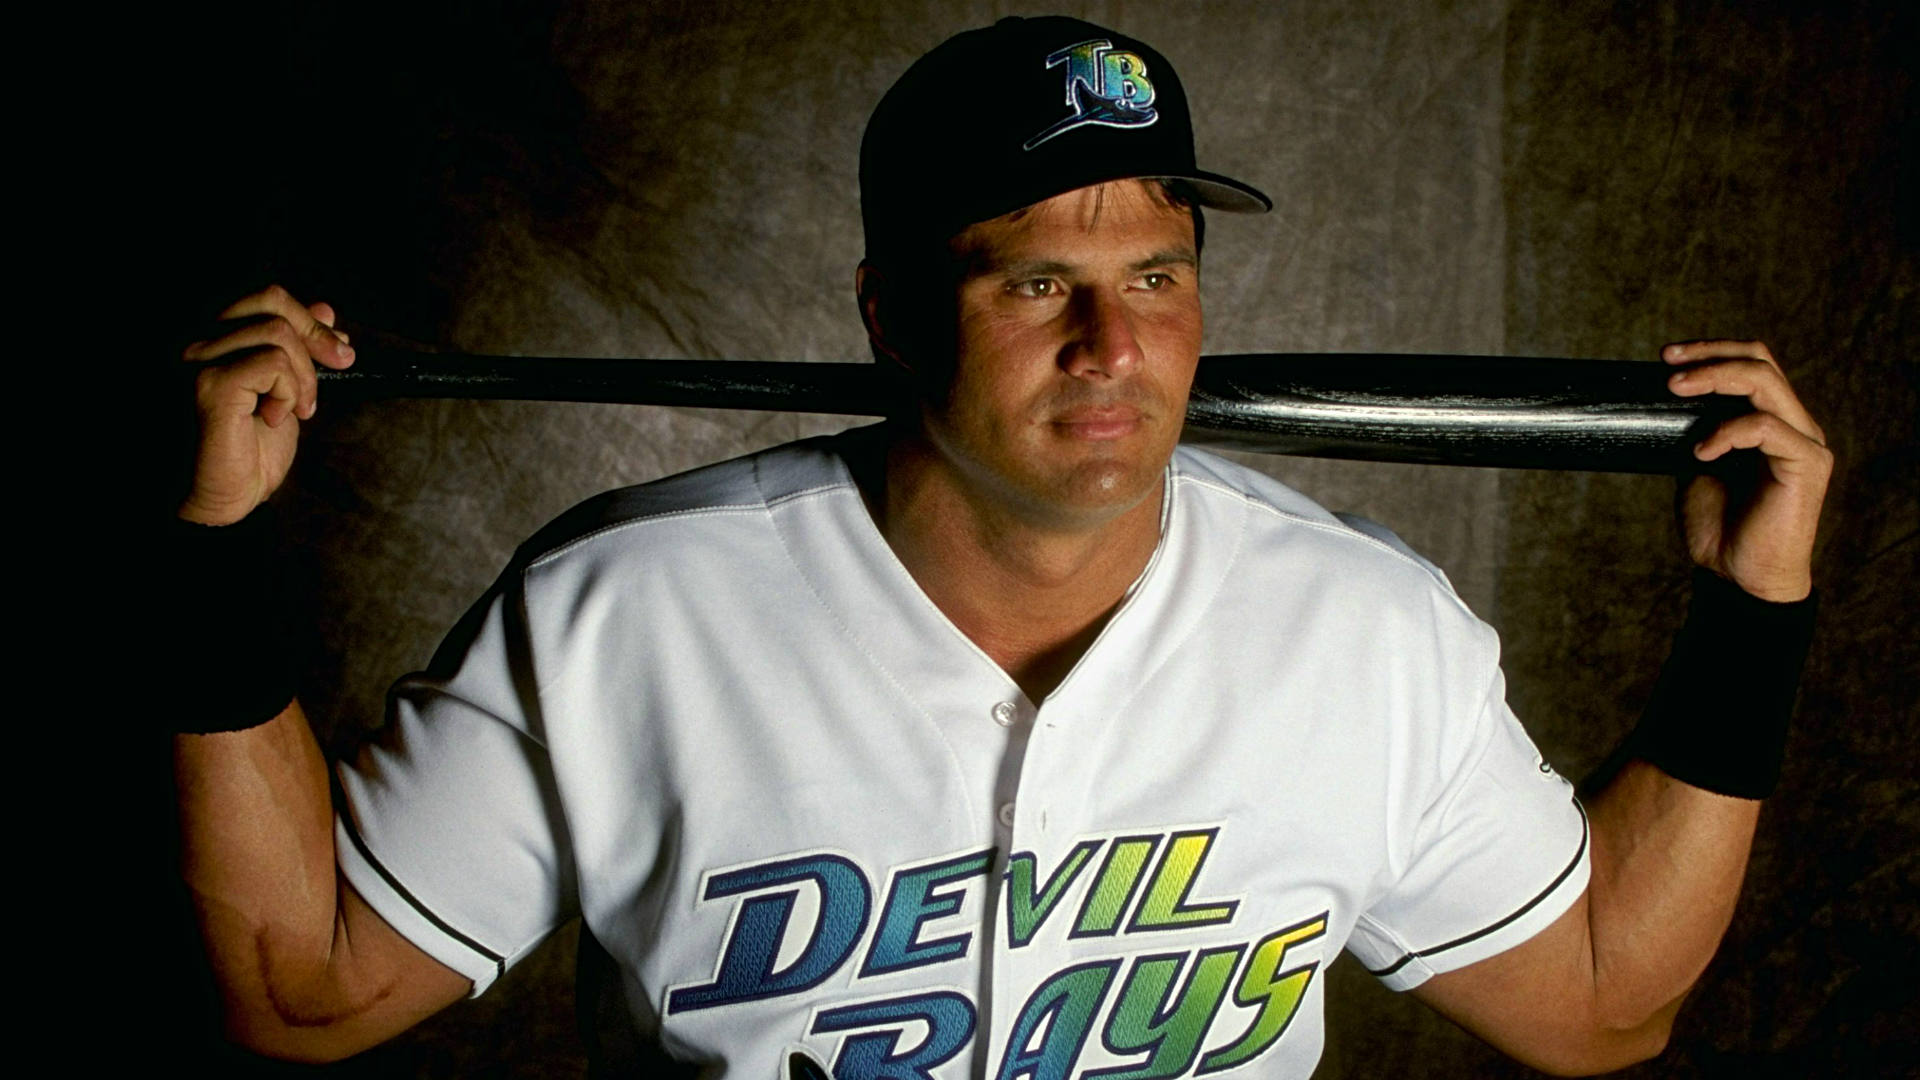 Jose Canseco once stole a mascot's head